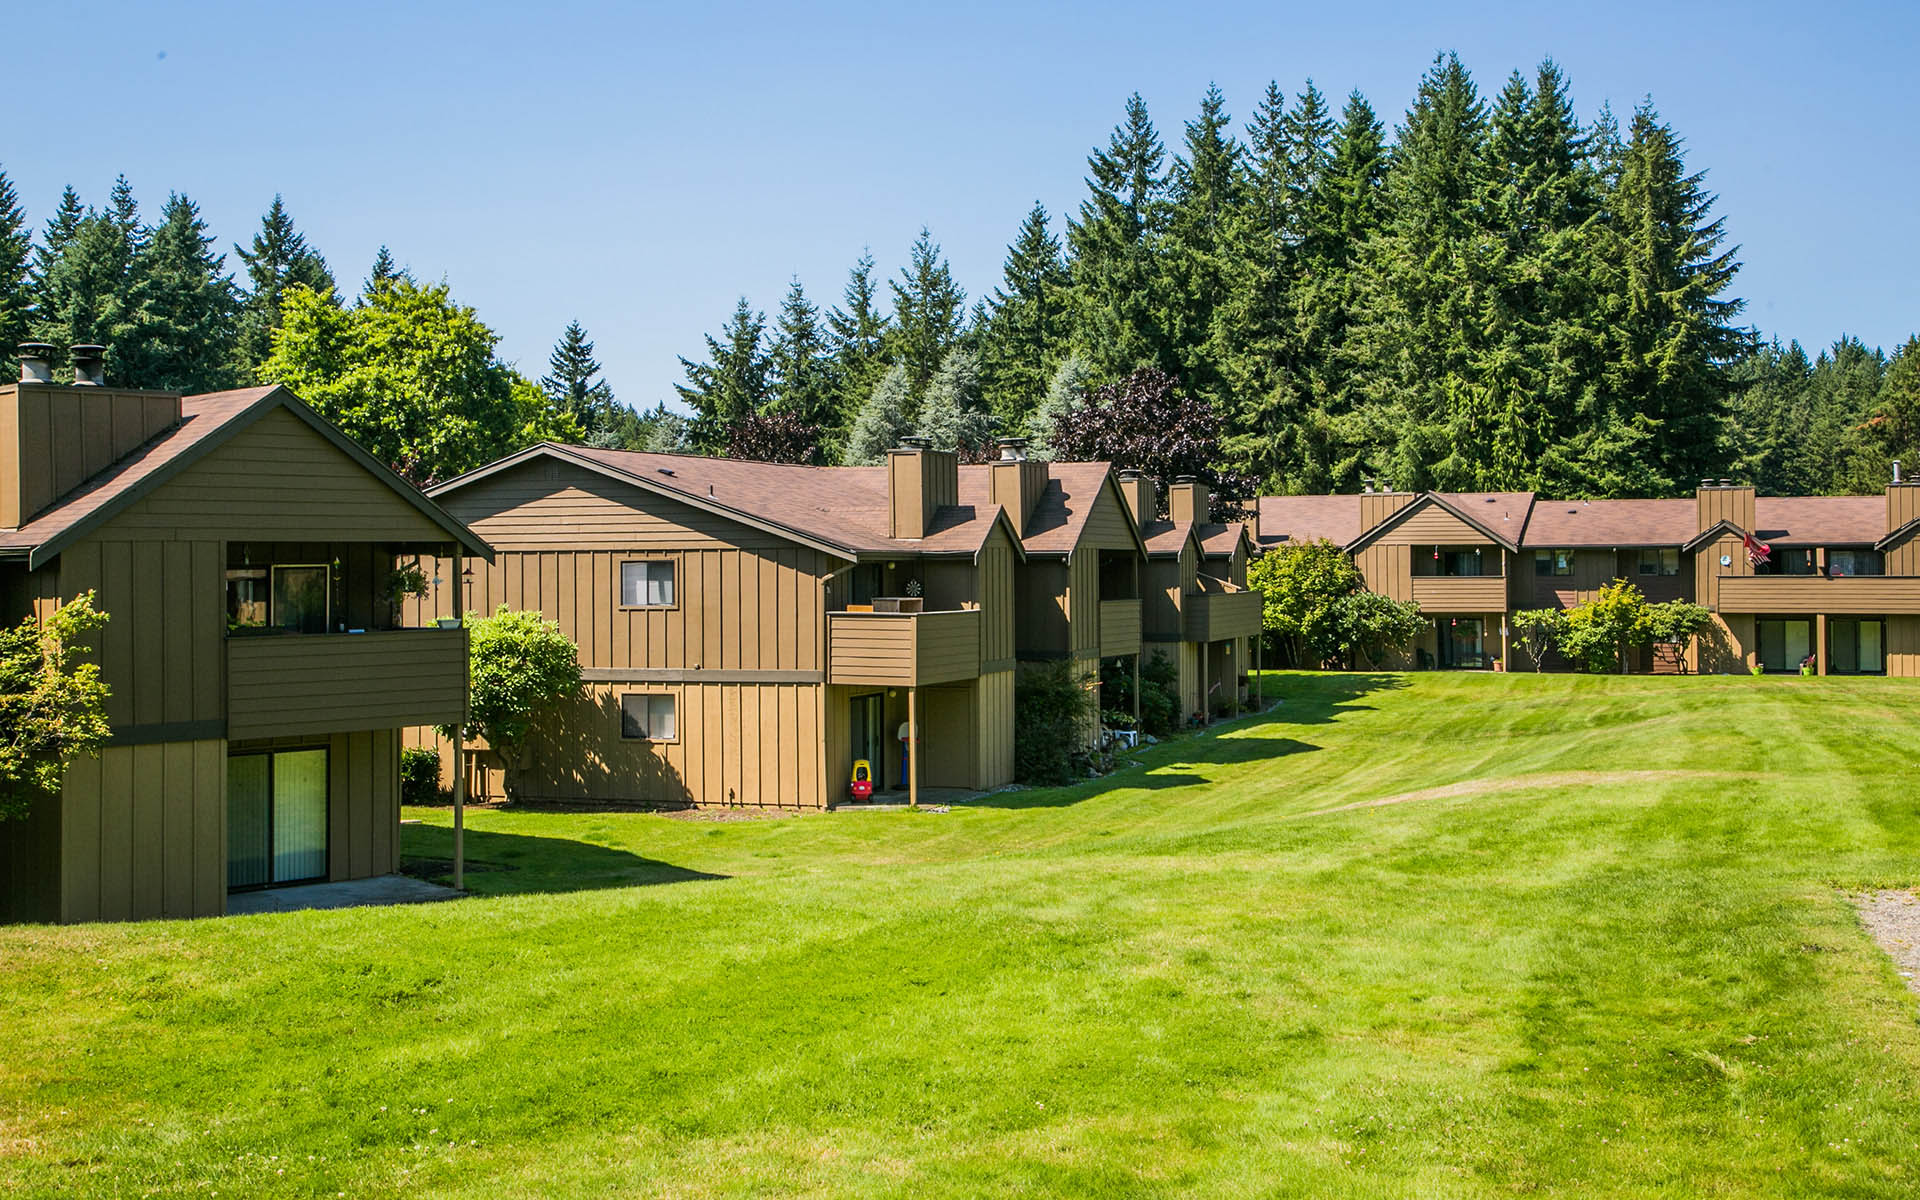 Extensively Landscaped Lawns And Courtyards At Marineru0027s Glen In Port  Orchard